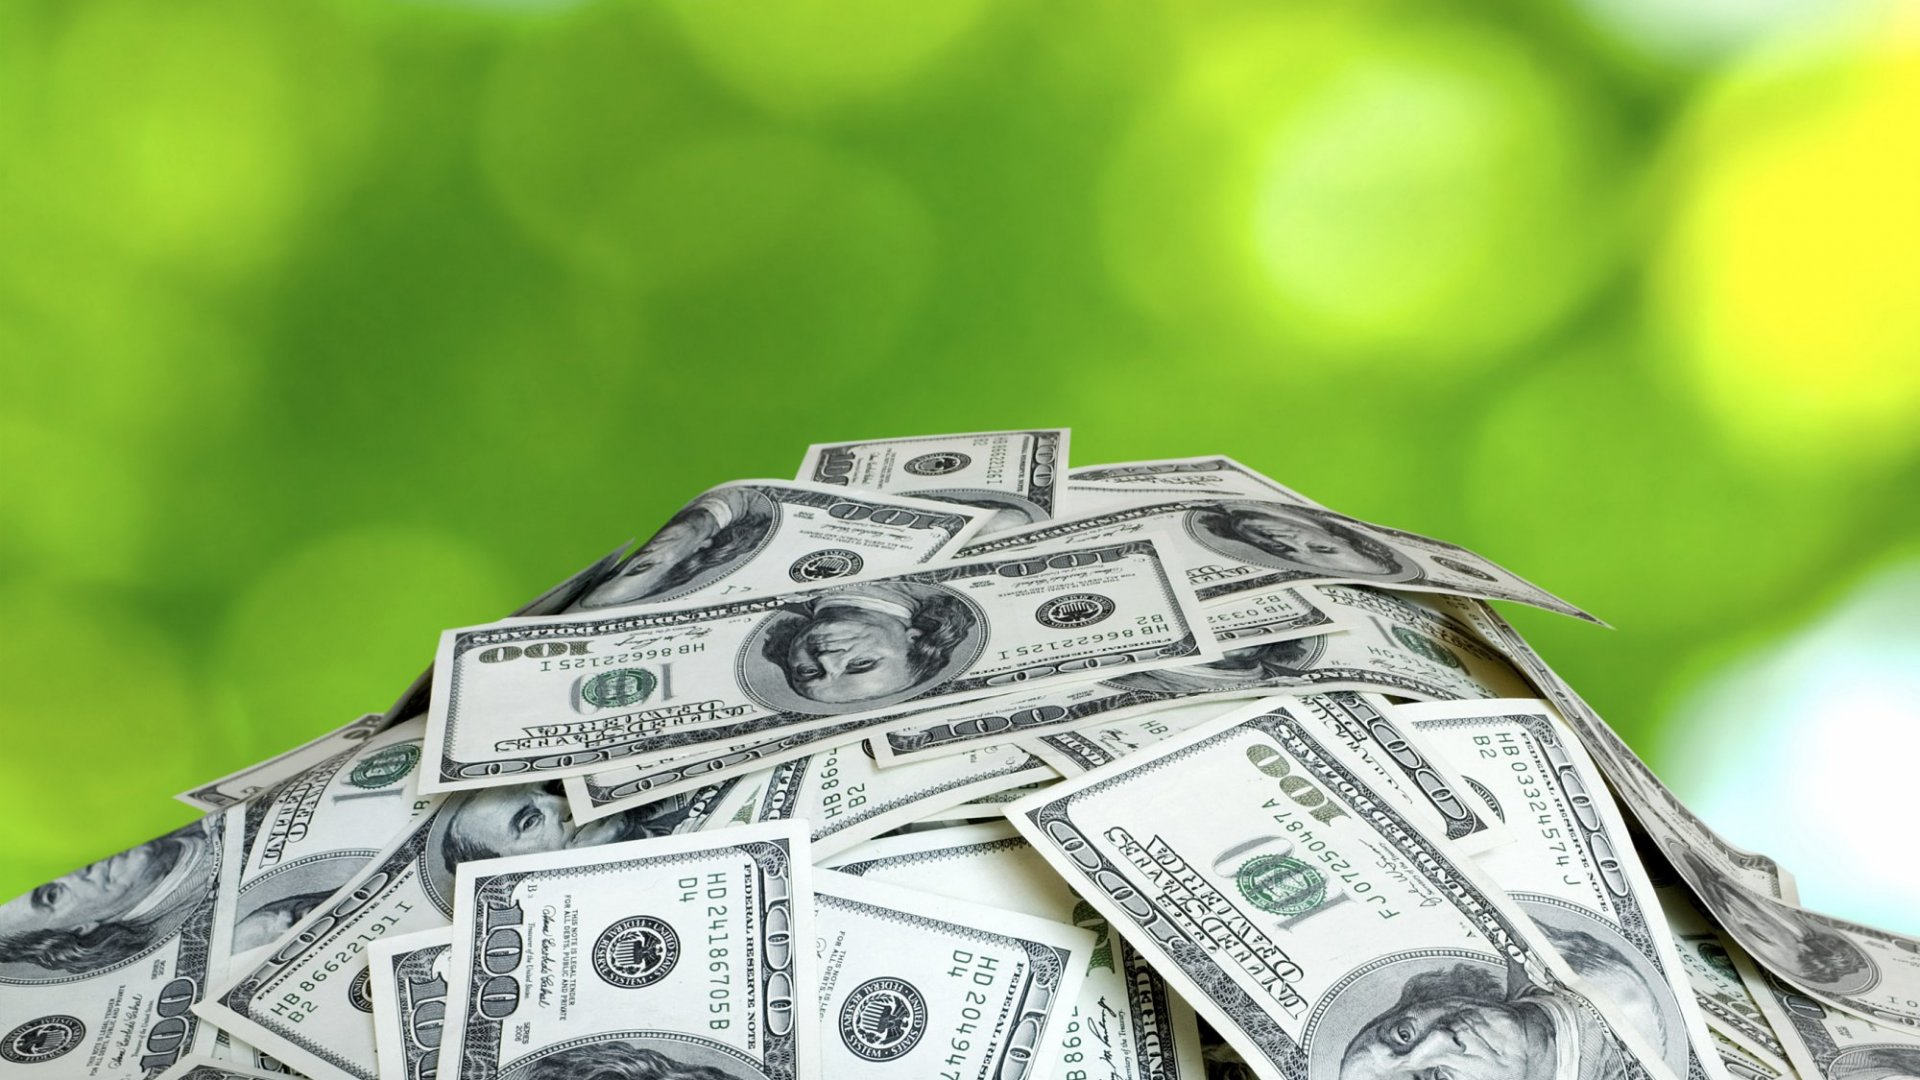 Fund Your Startup With These Top 3 Paying Gigs